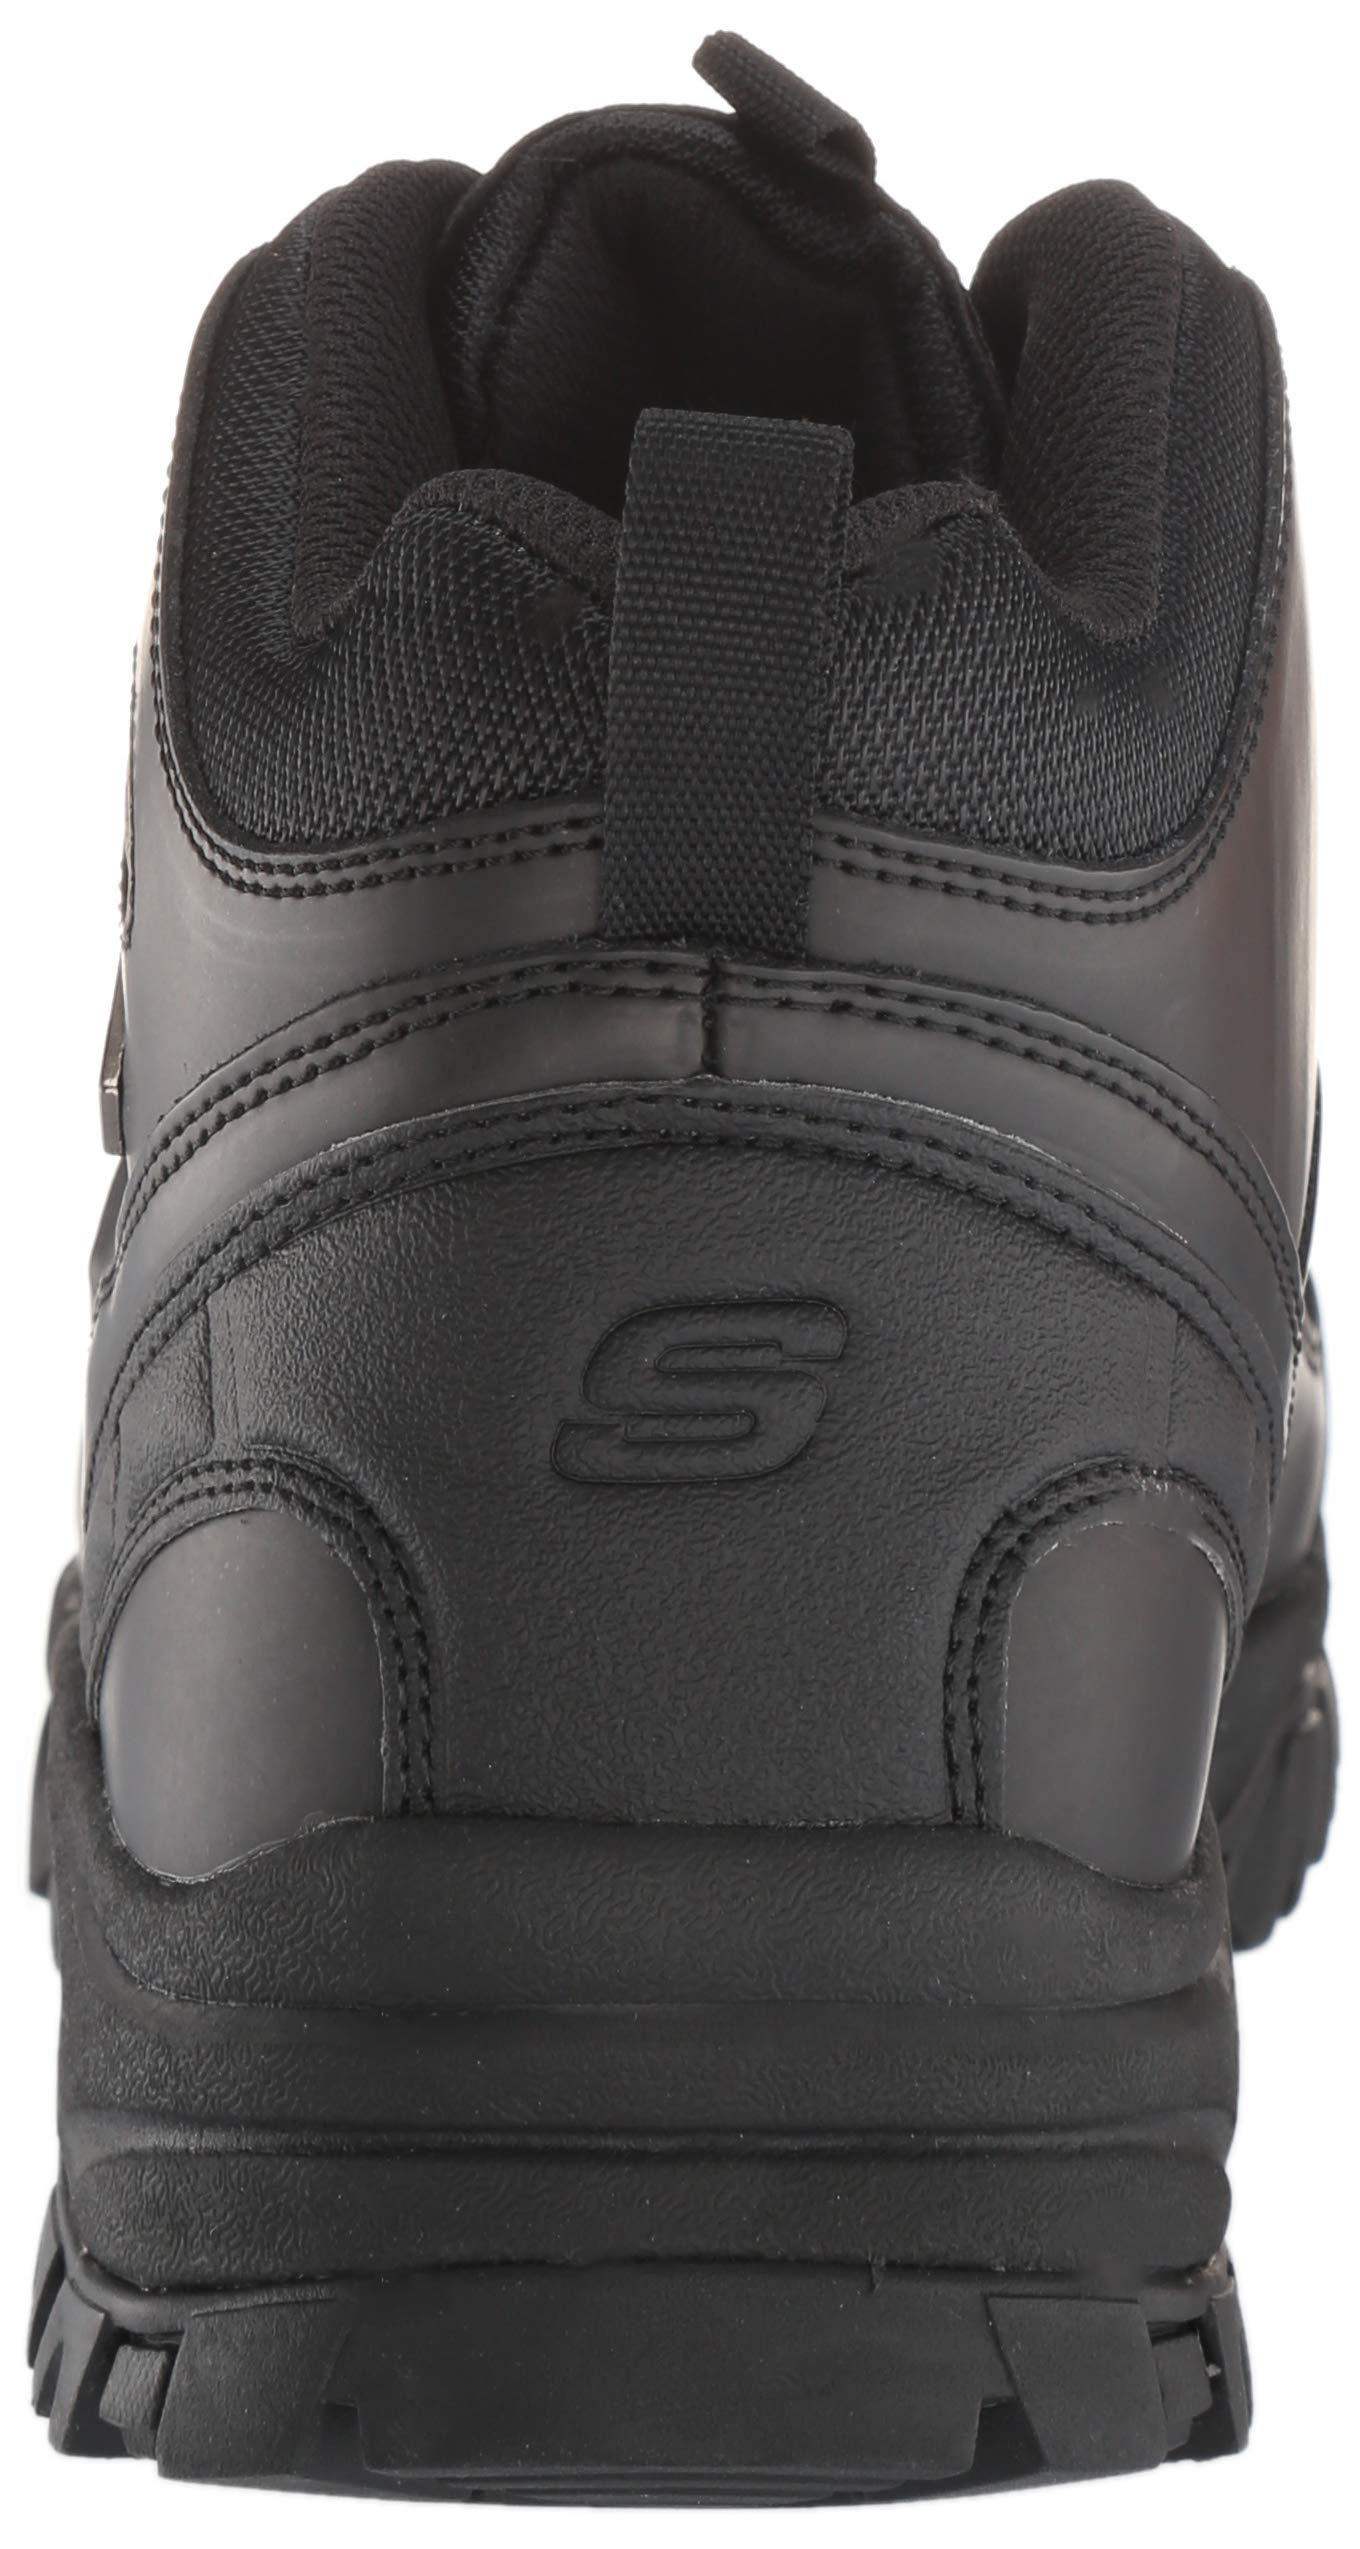 Boots Traven Rise High Hiking Skechers Relment Men's 9WHDYEI2